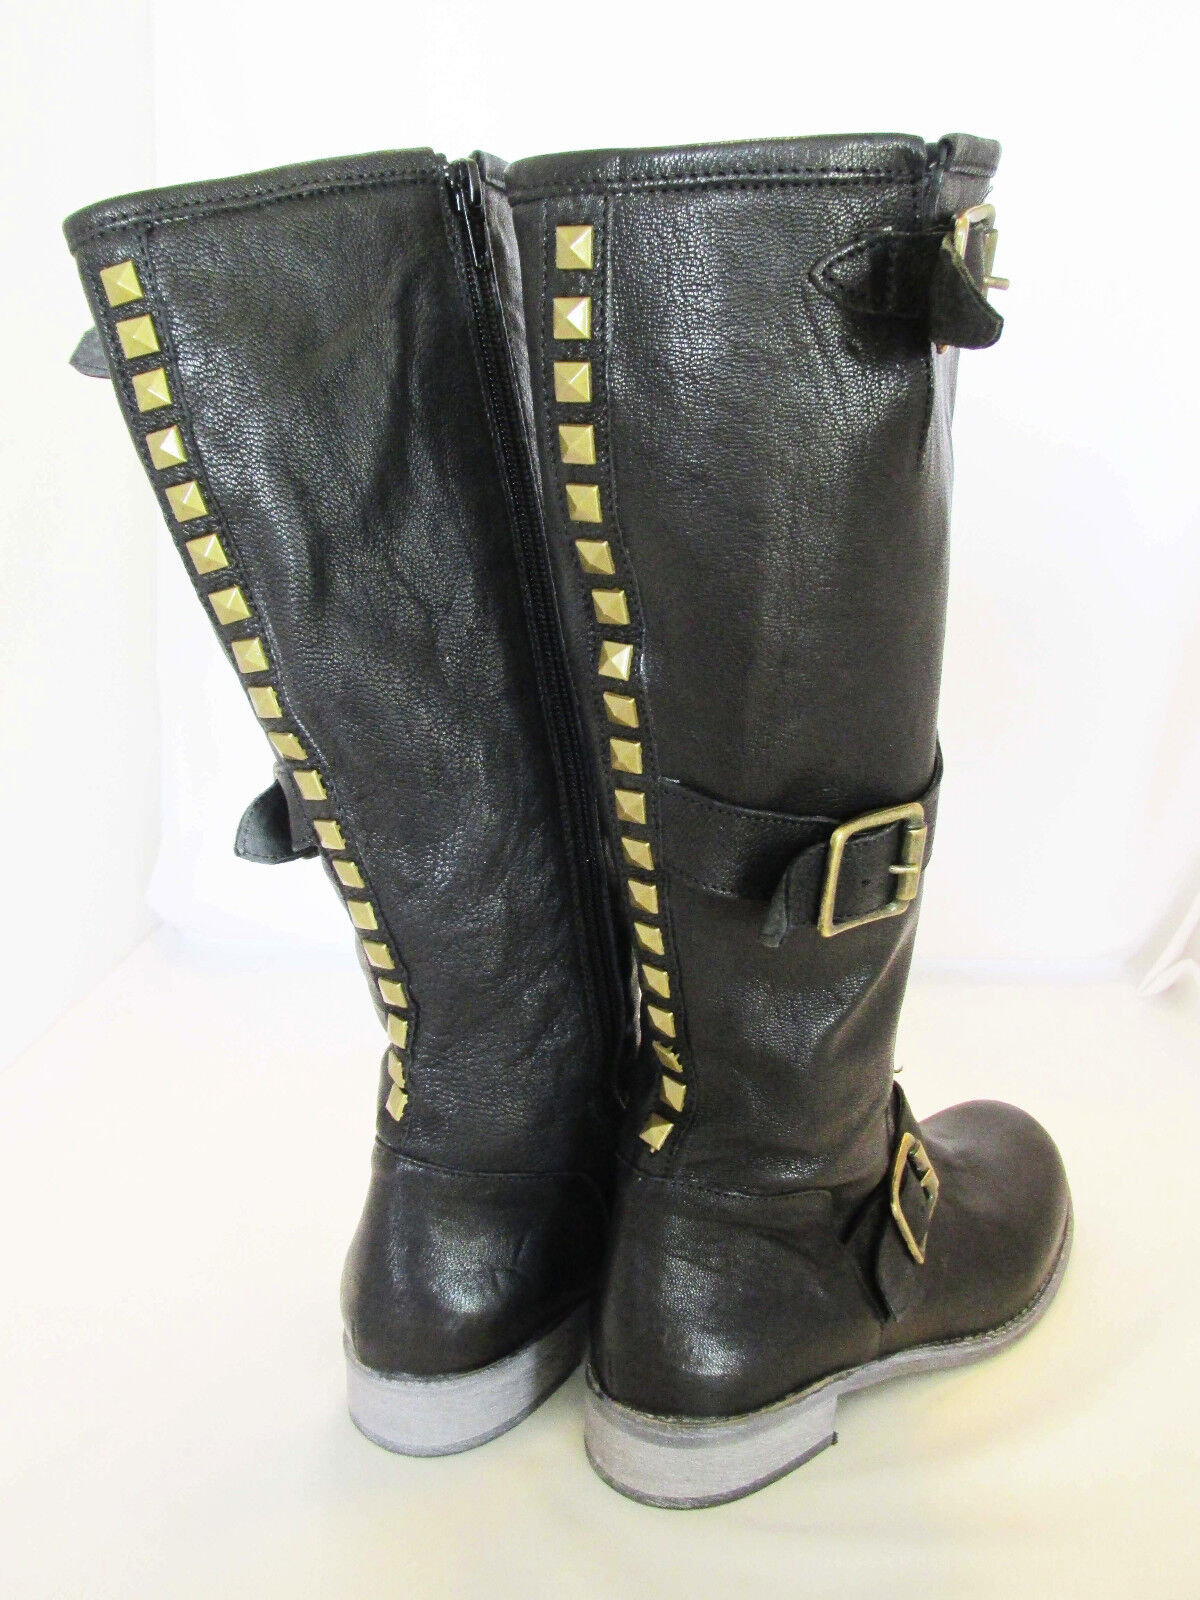 CORDANI Black Leather Brass Studded Knee High Boots, Boots, Boots, Straps US 7.5 EU 37.5 051980